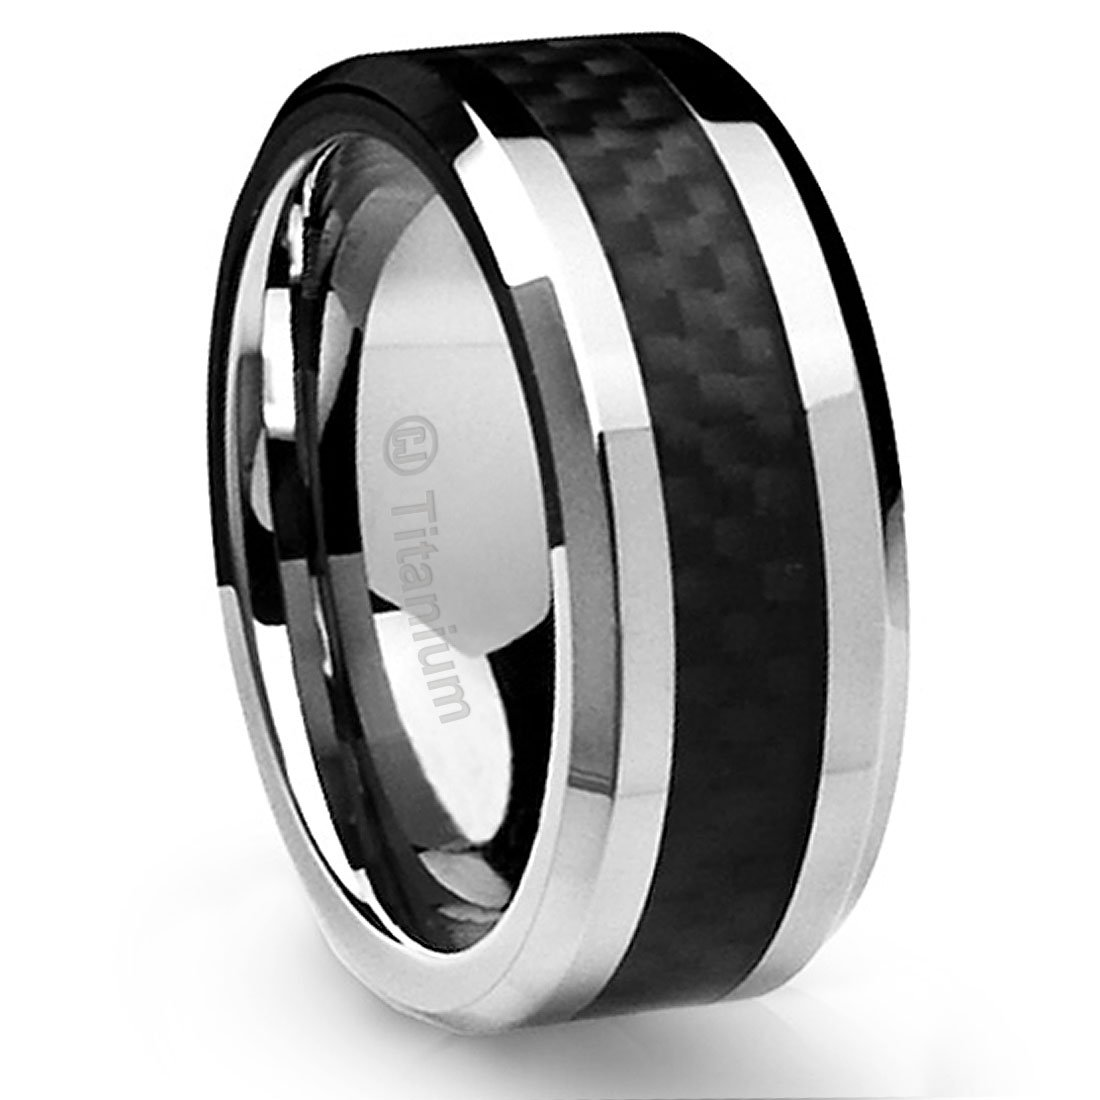 10mm Sleek Titanium Wedding Band by Cavalier Jewelers – Comfort Fit Wedding Ring with Polished Finish – Lightweight Band for Men – Black Carbon Fiber Inlay – Perfect Gift Ring [Size 11]